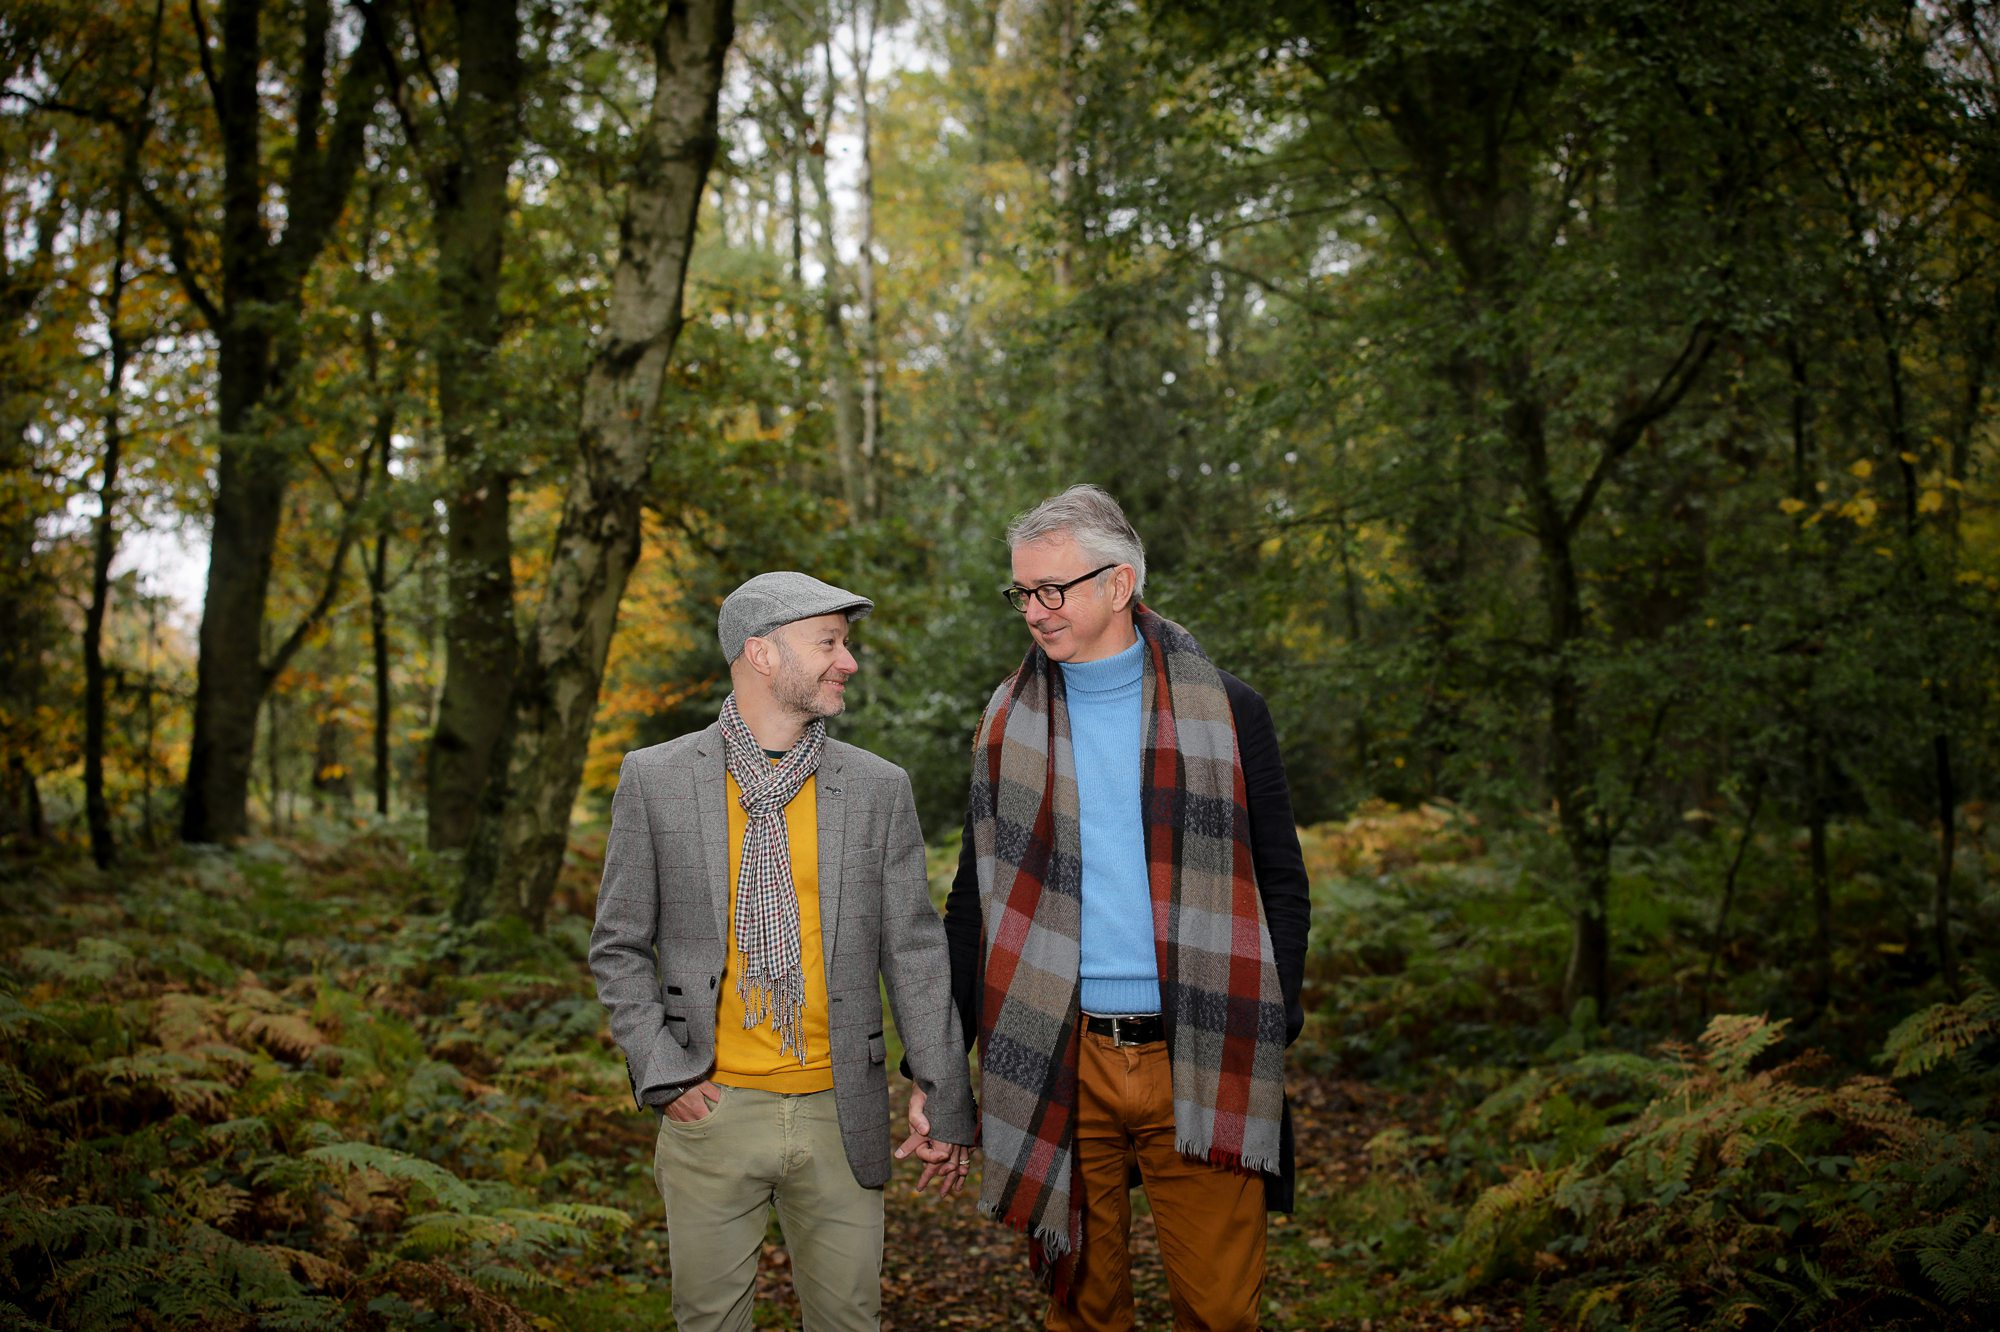 Autumn Pre-Wedding Photo shoot | Mike + Grant